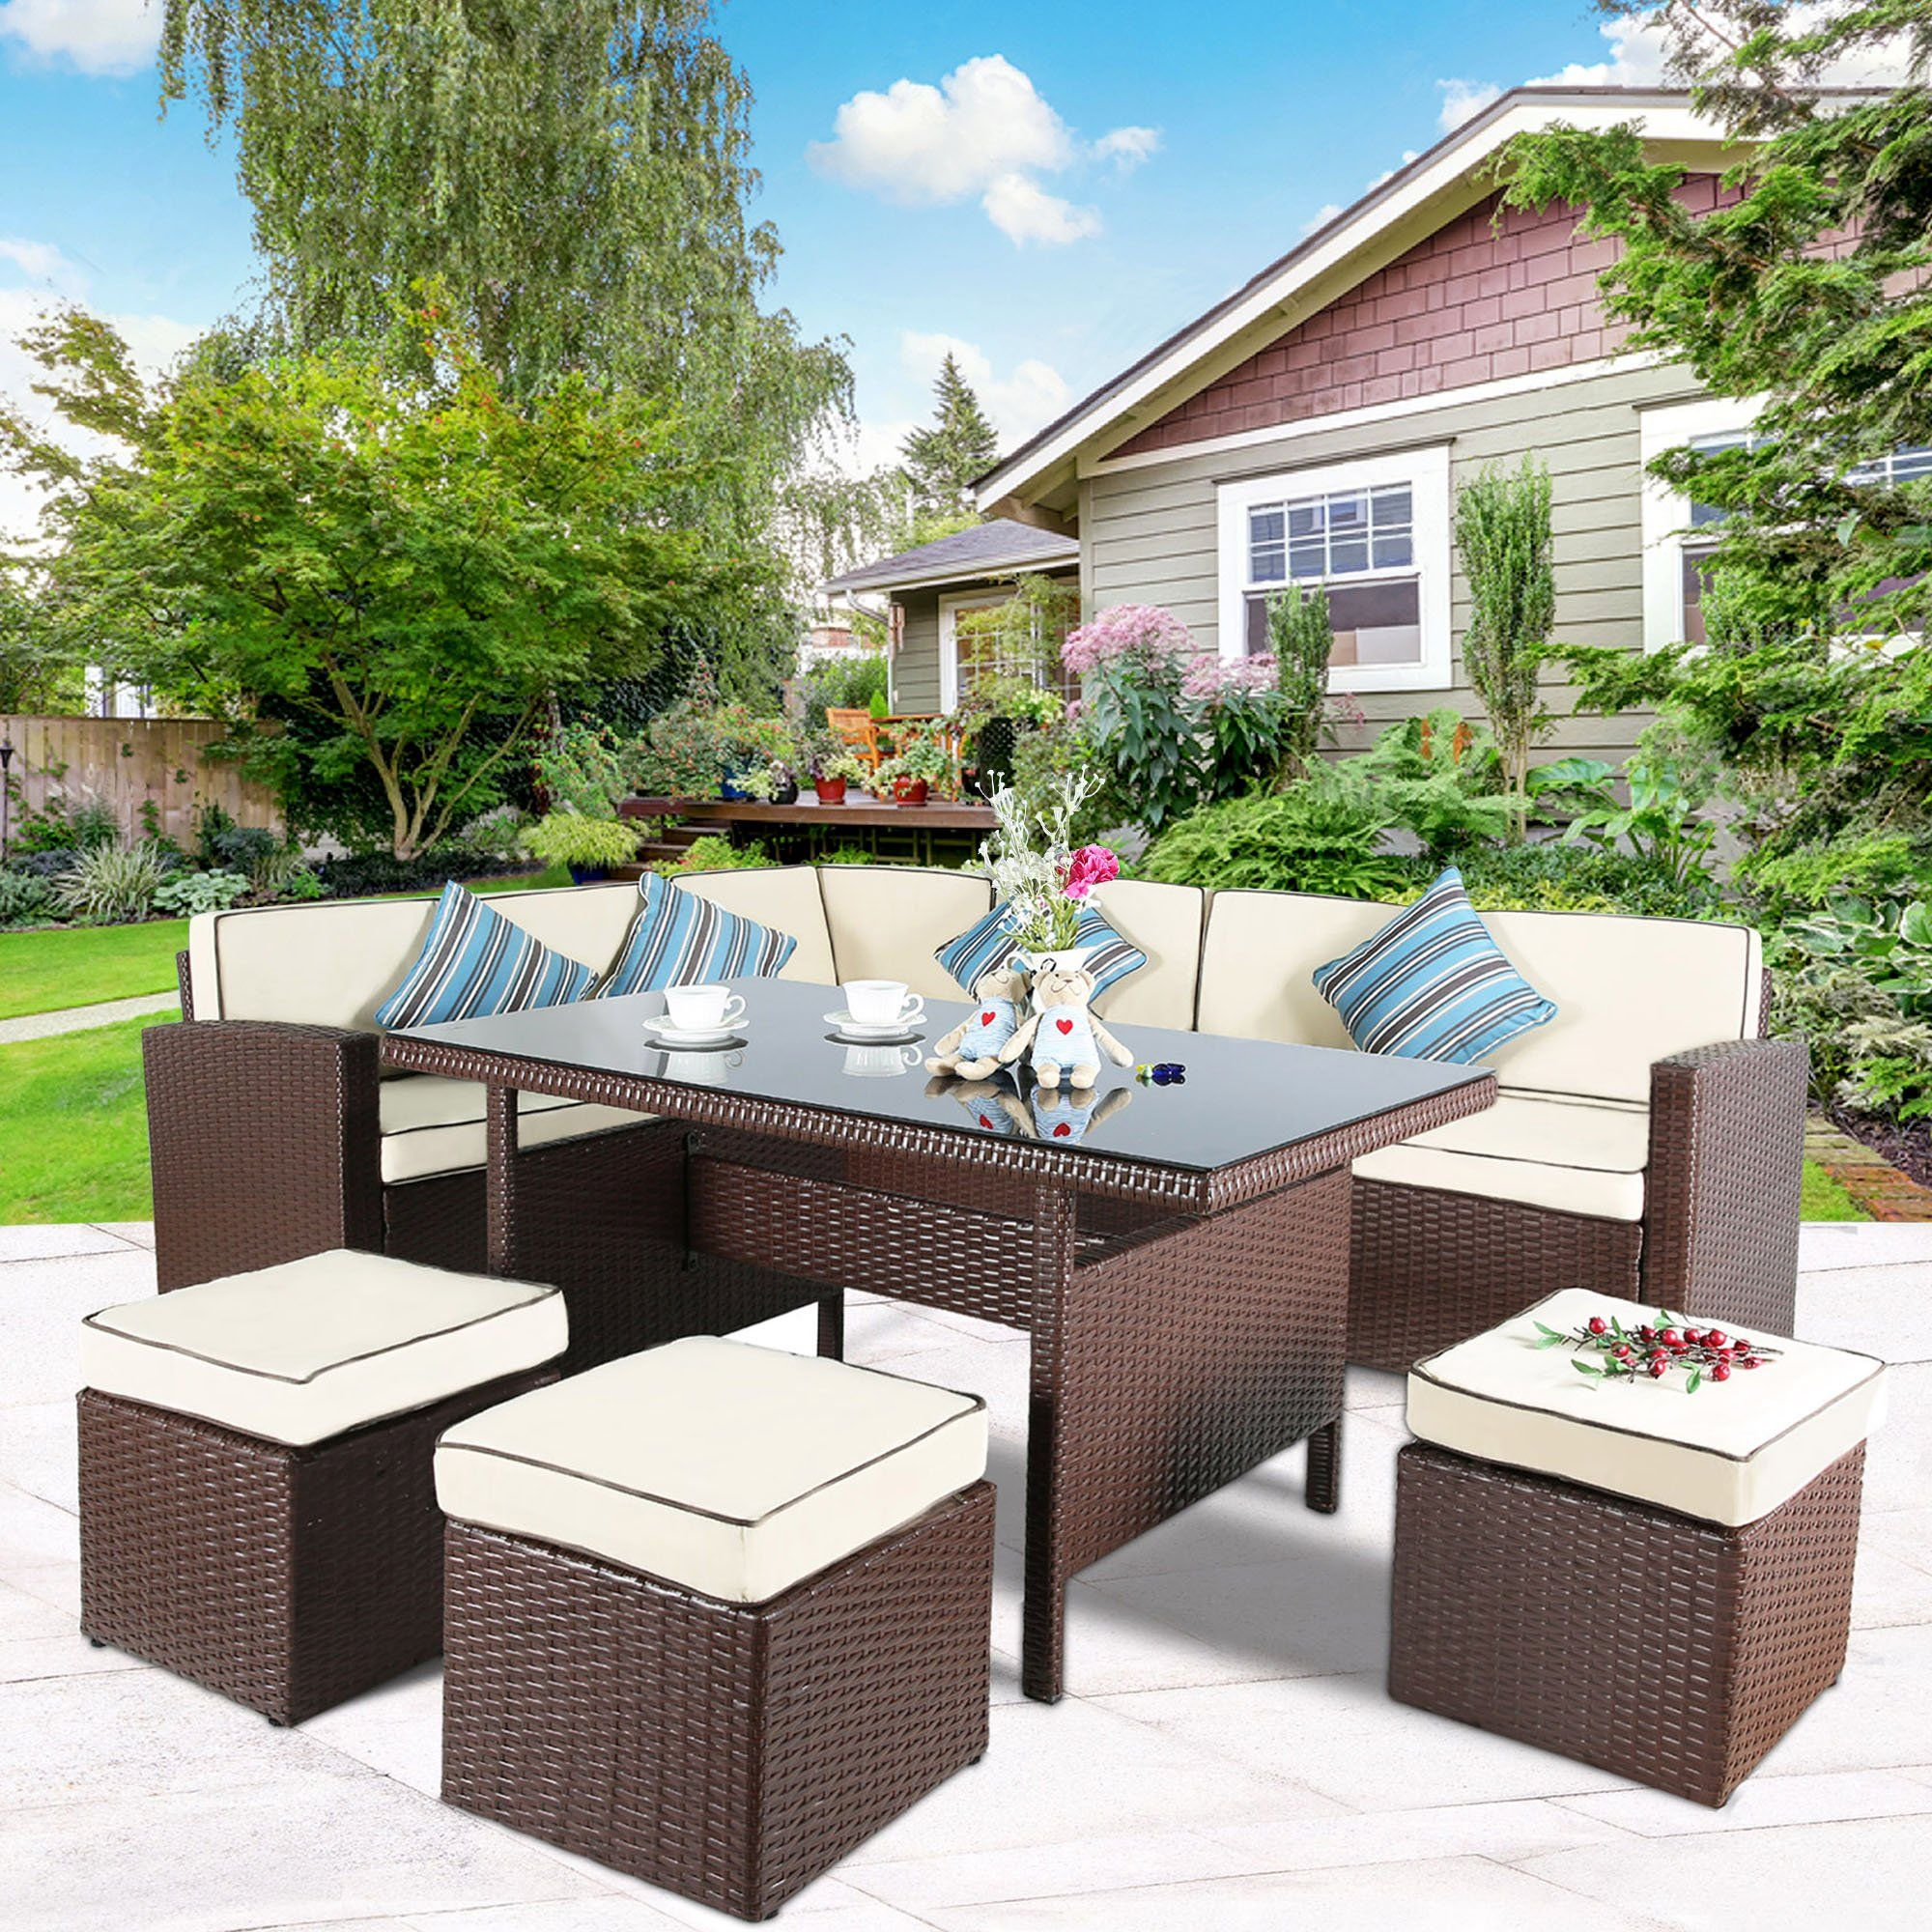 Cloud Mountain 7 Pc Patio Wicker Rattan Dining Set Outdoor